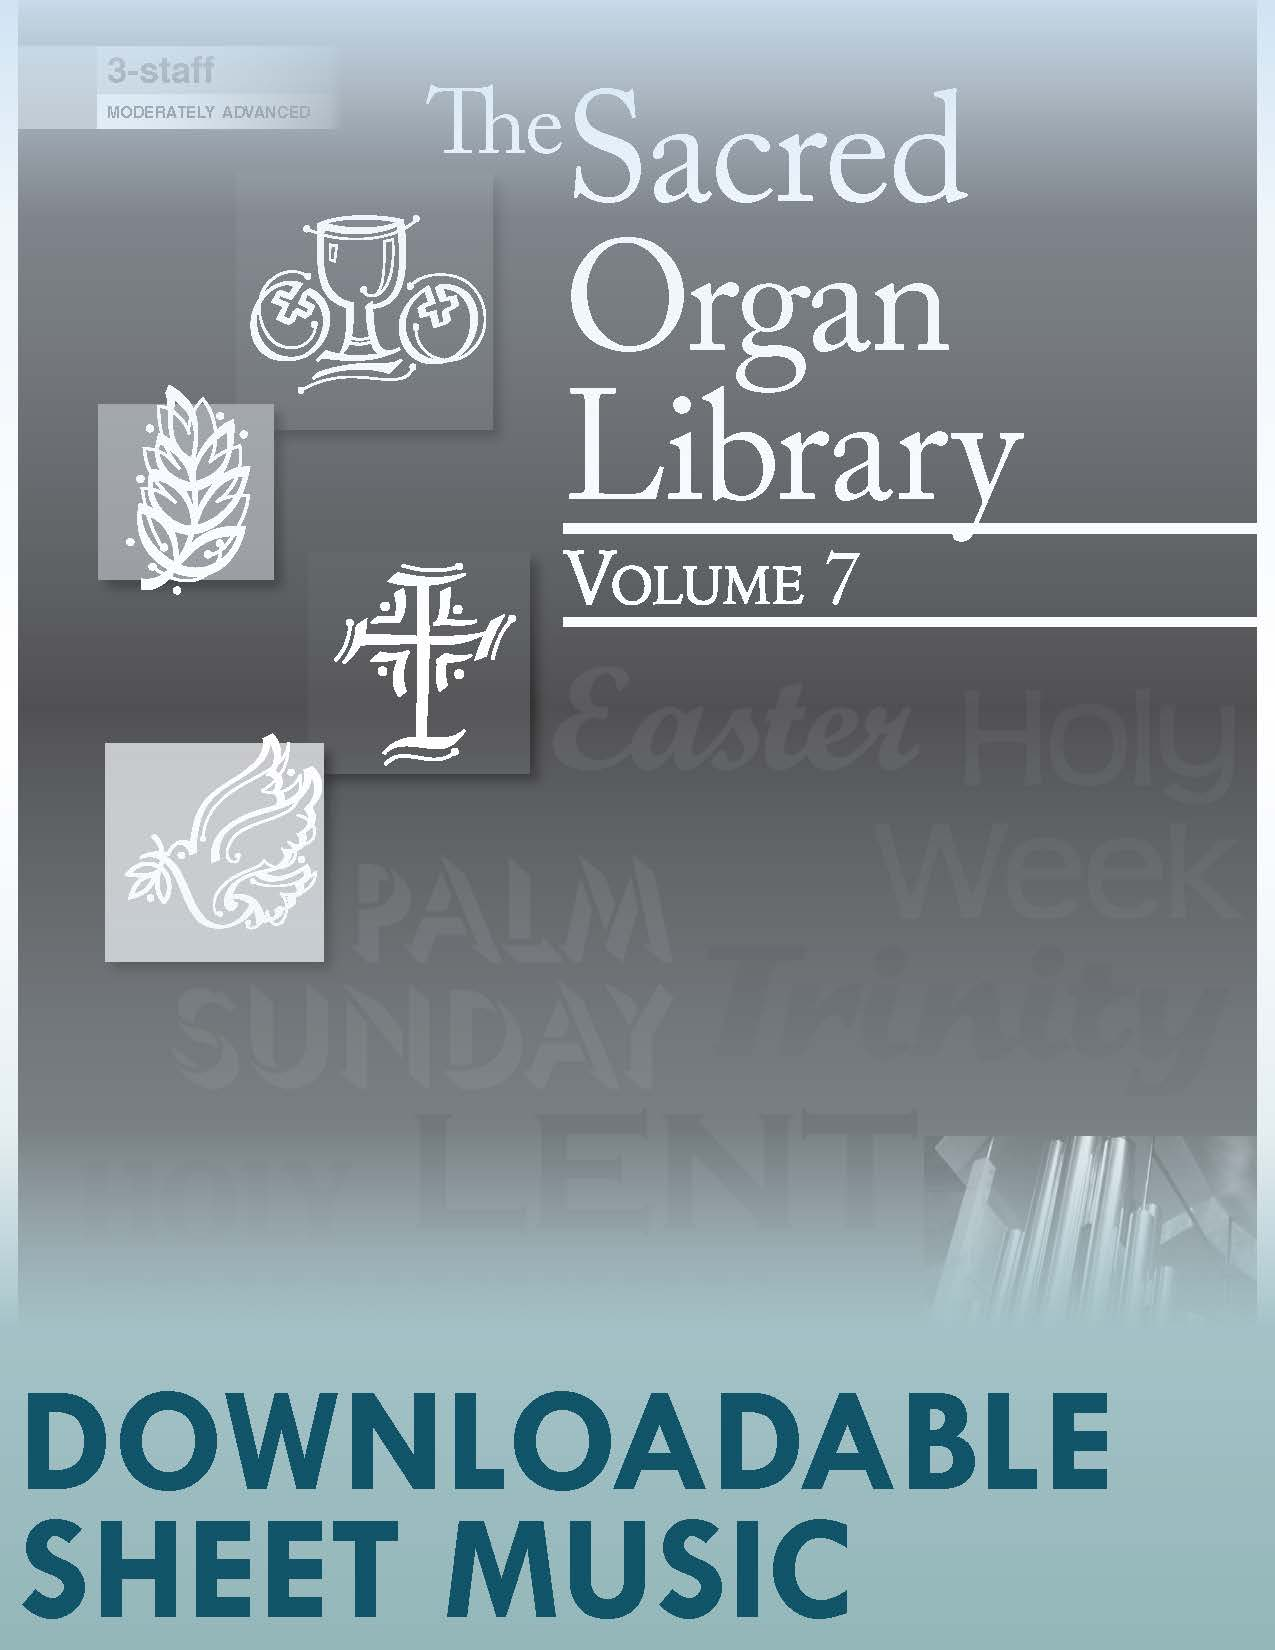 The Sacred Organ Library, Vol 7 - Digital Download